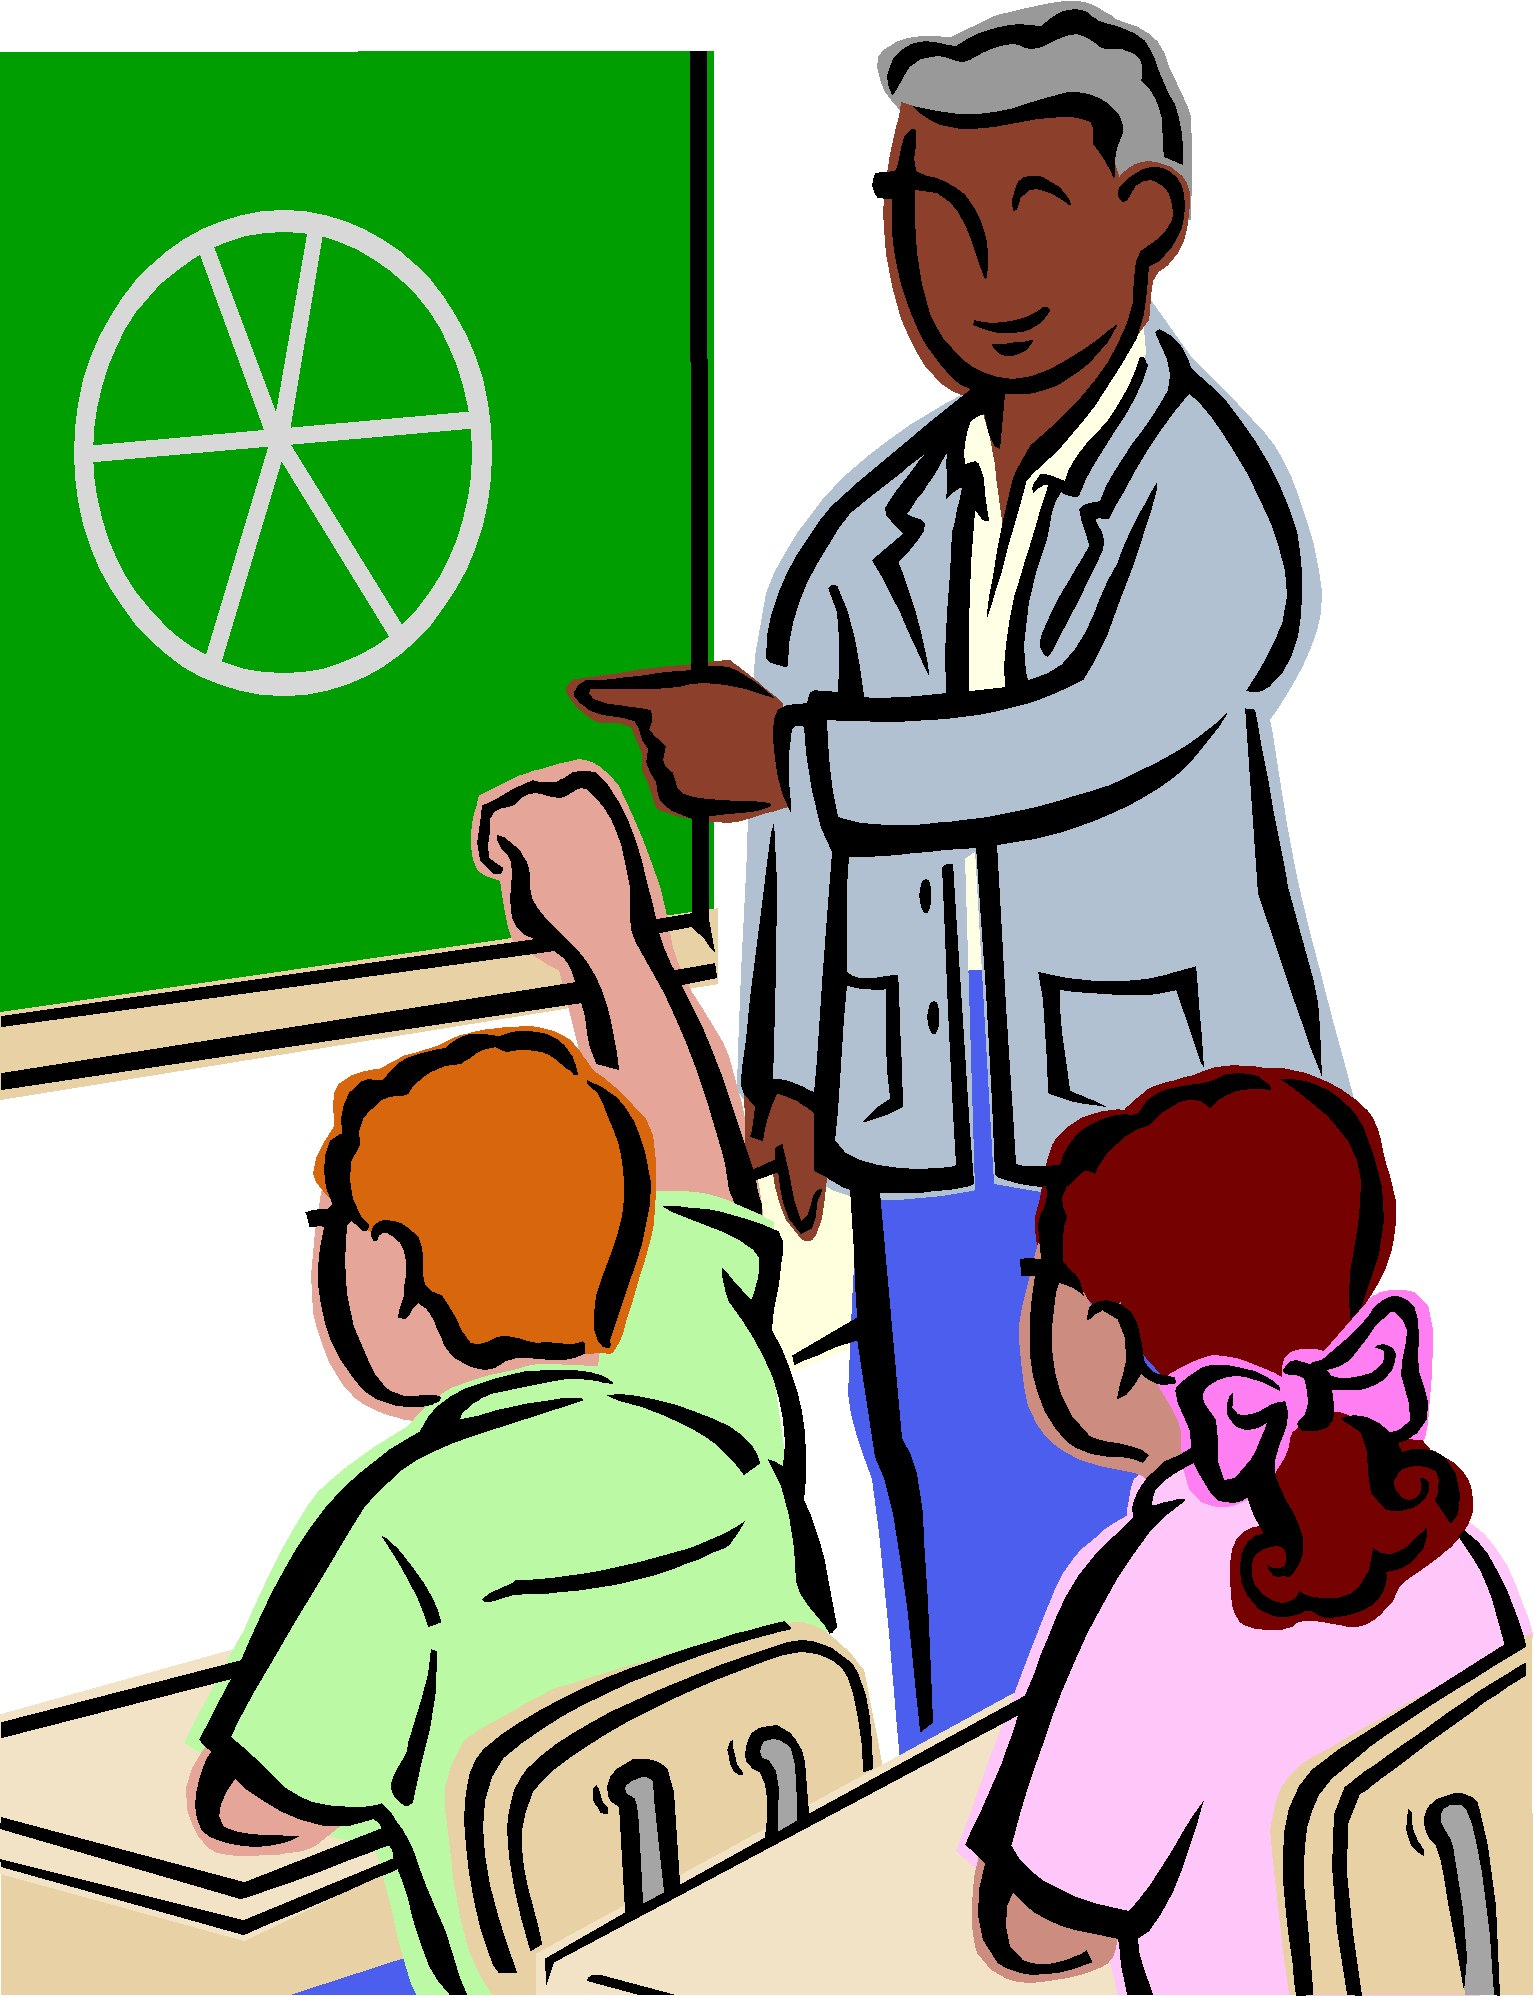 student drawing clipart at getdrawings com free for personal use rh getdrawings com free clipart for teachers images free clipart teacher